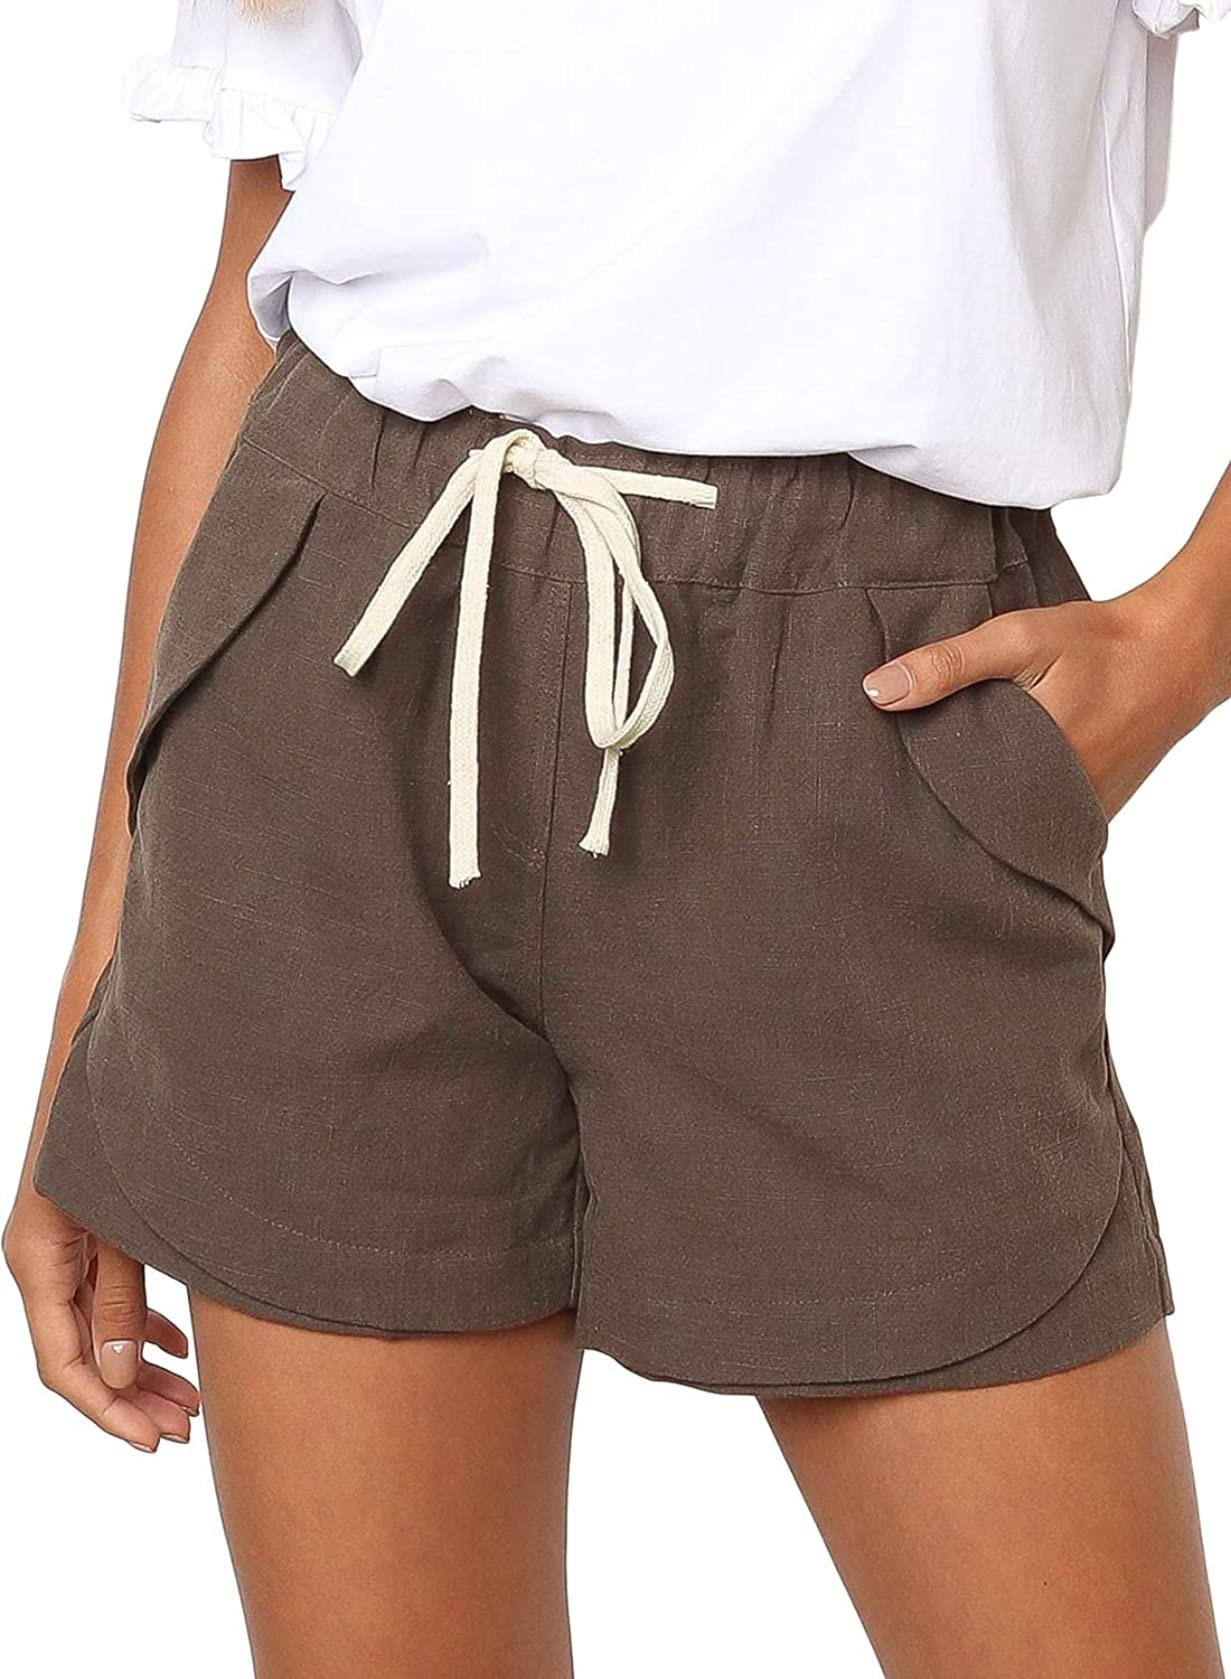 The shorts with a drawstring waist in brown